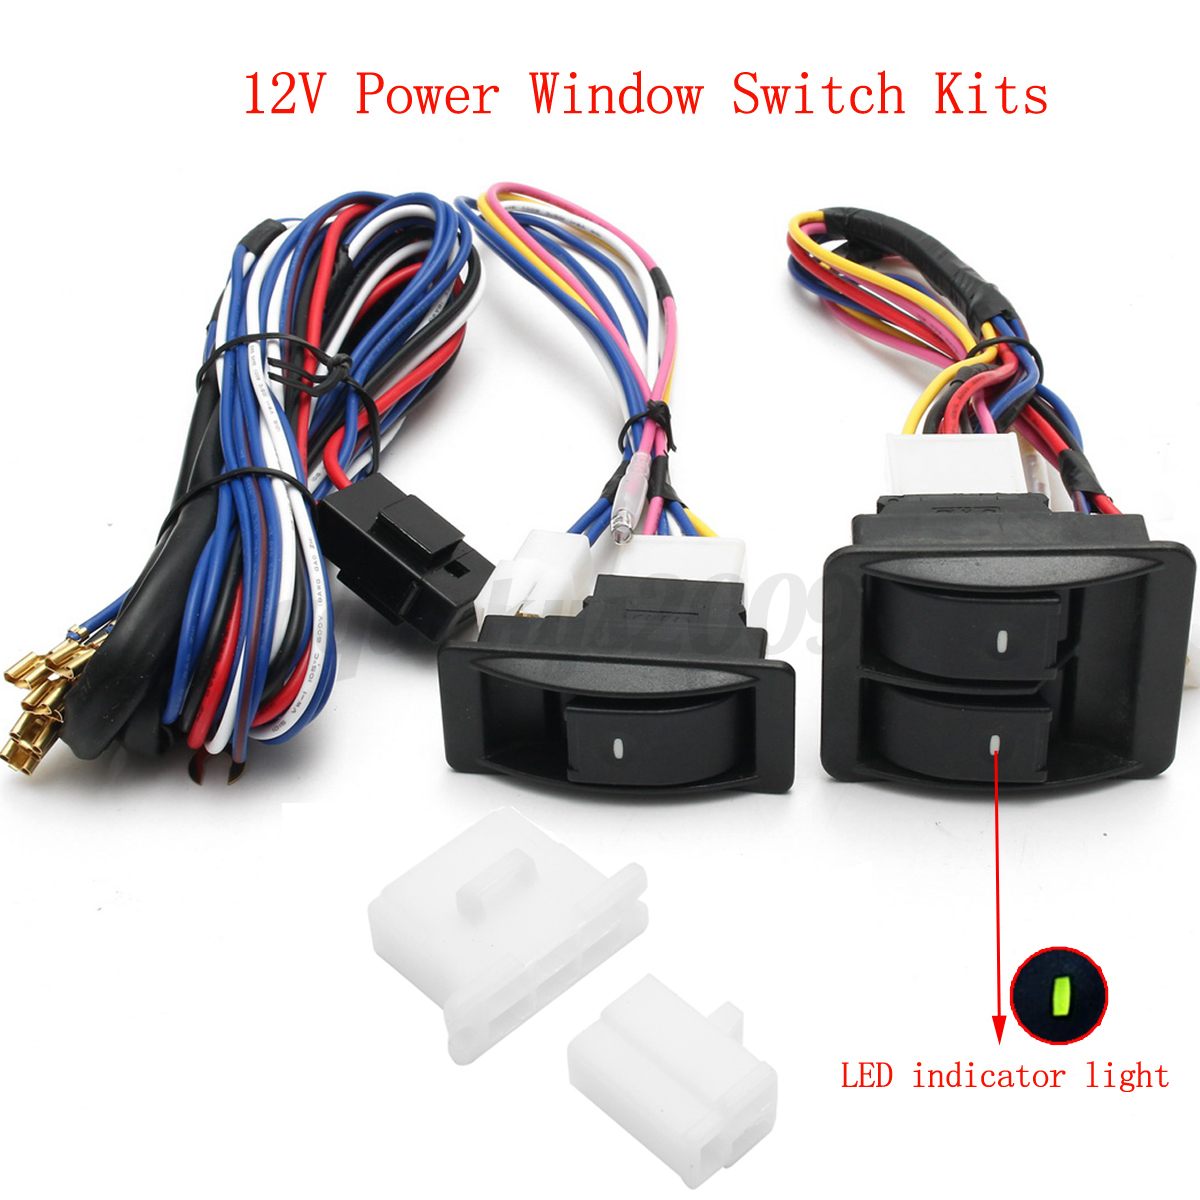 6pcs 12v Universal Power Window Switch Kits With Manual Guide